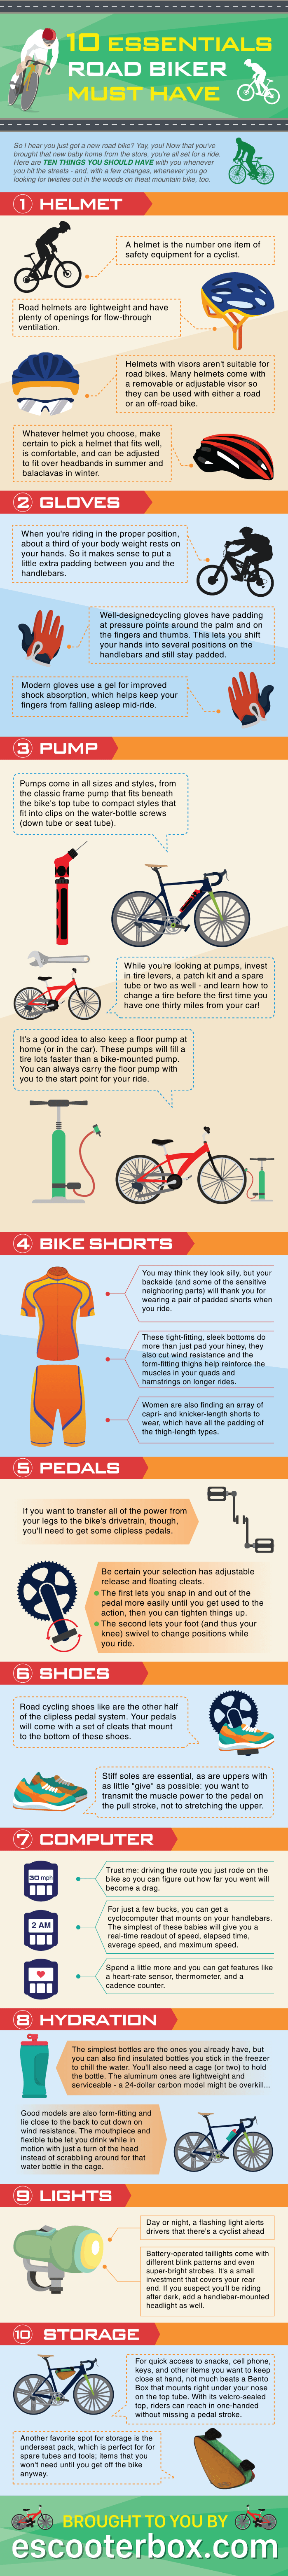 10 essential things must have for bikers